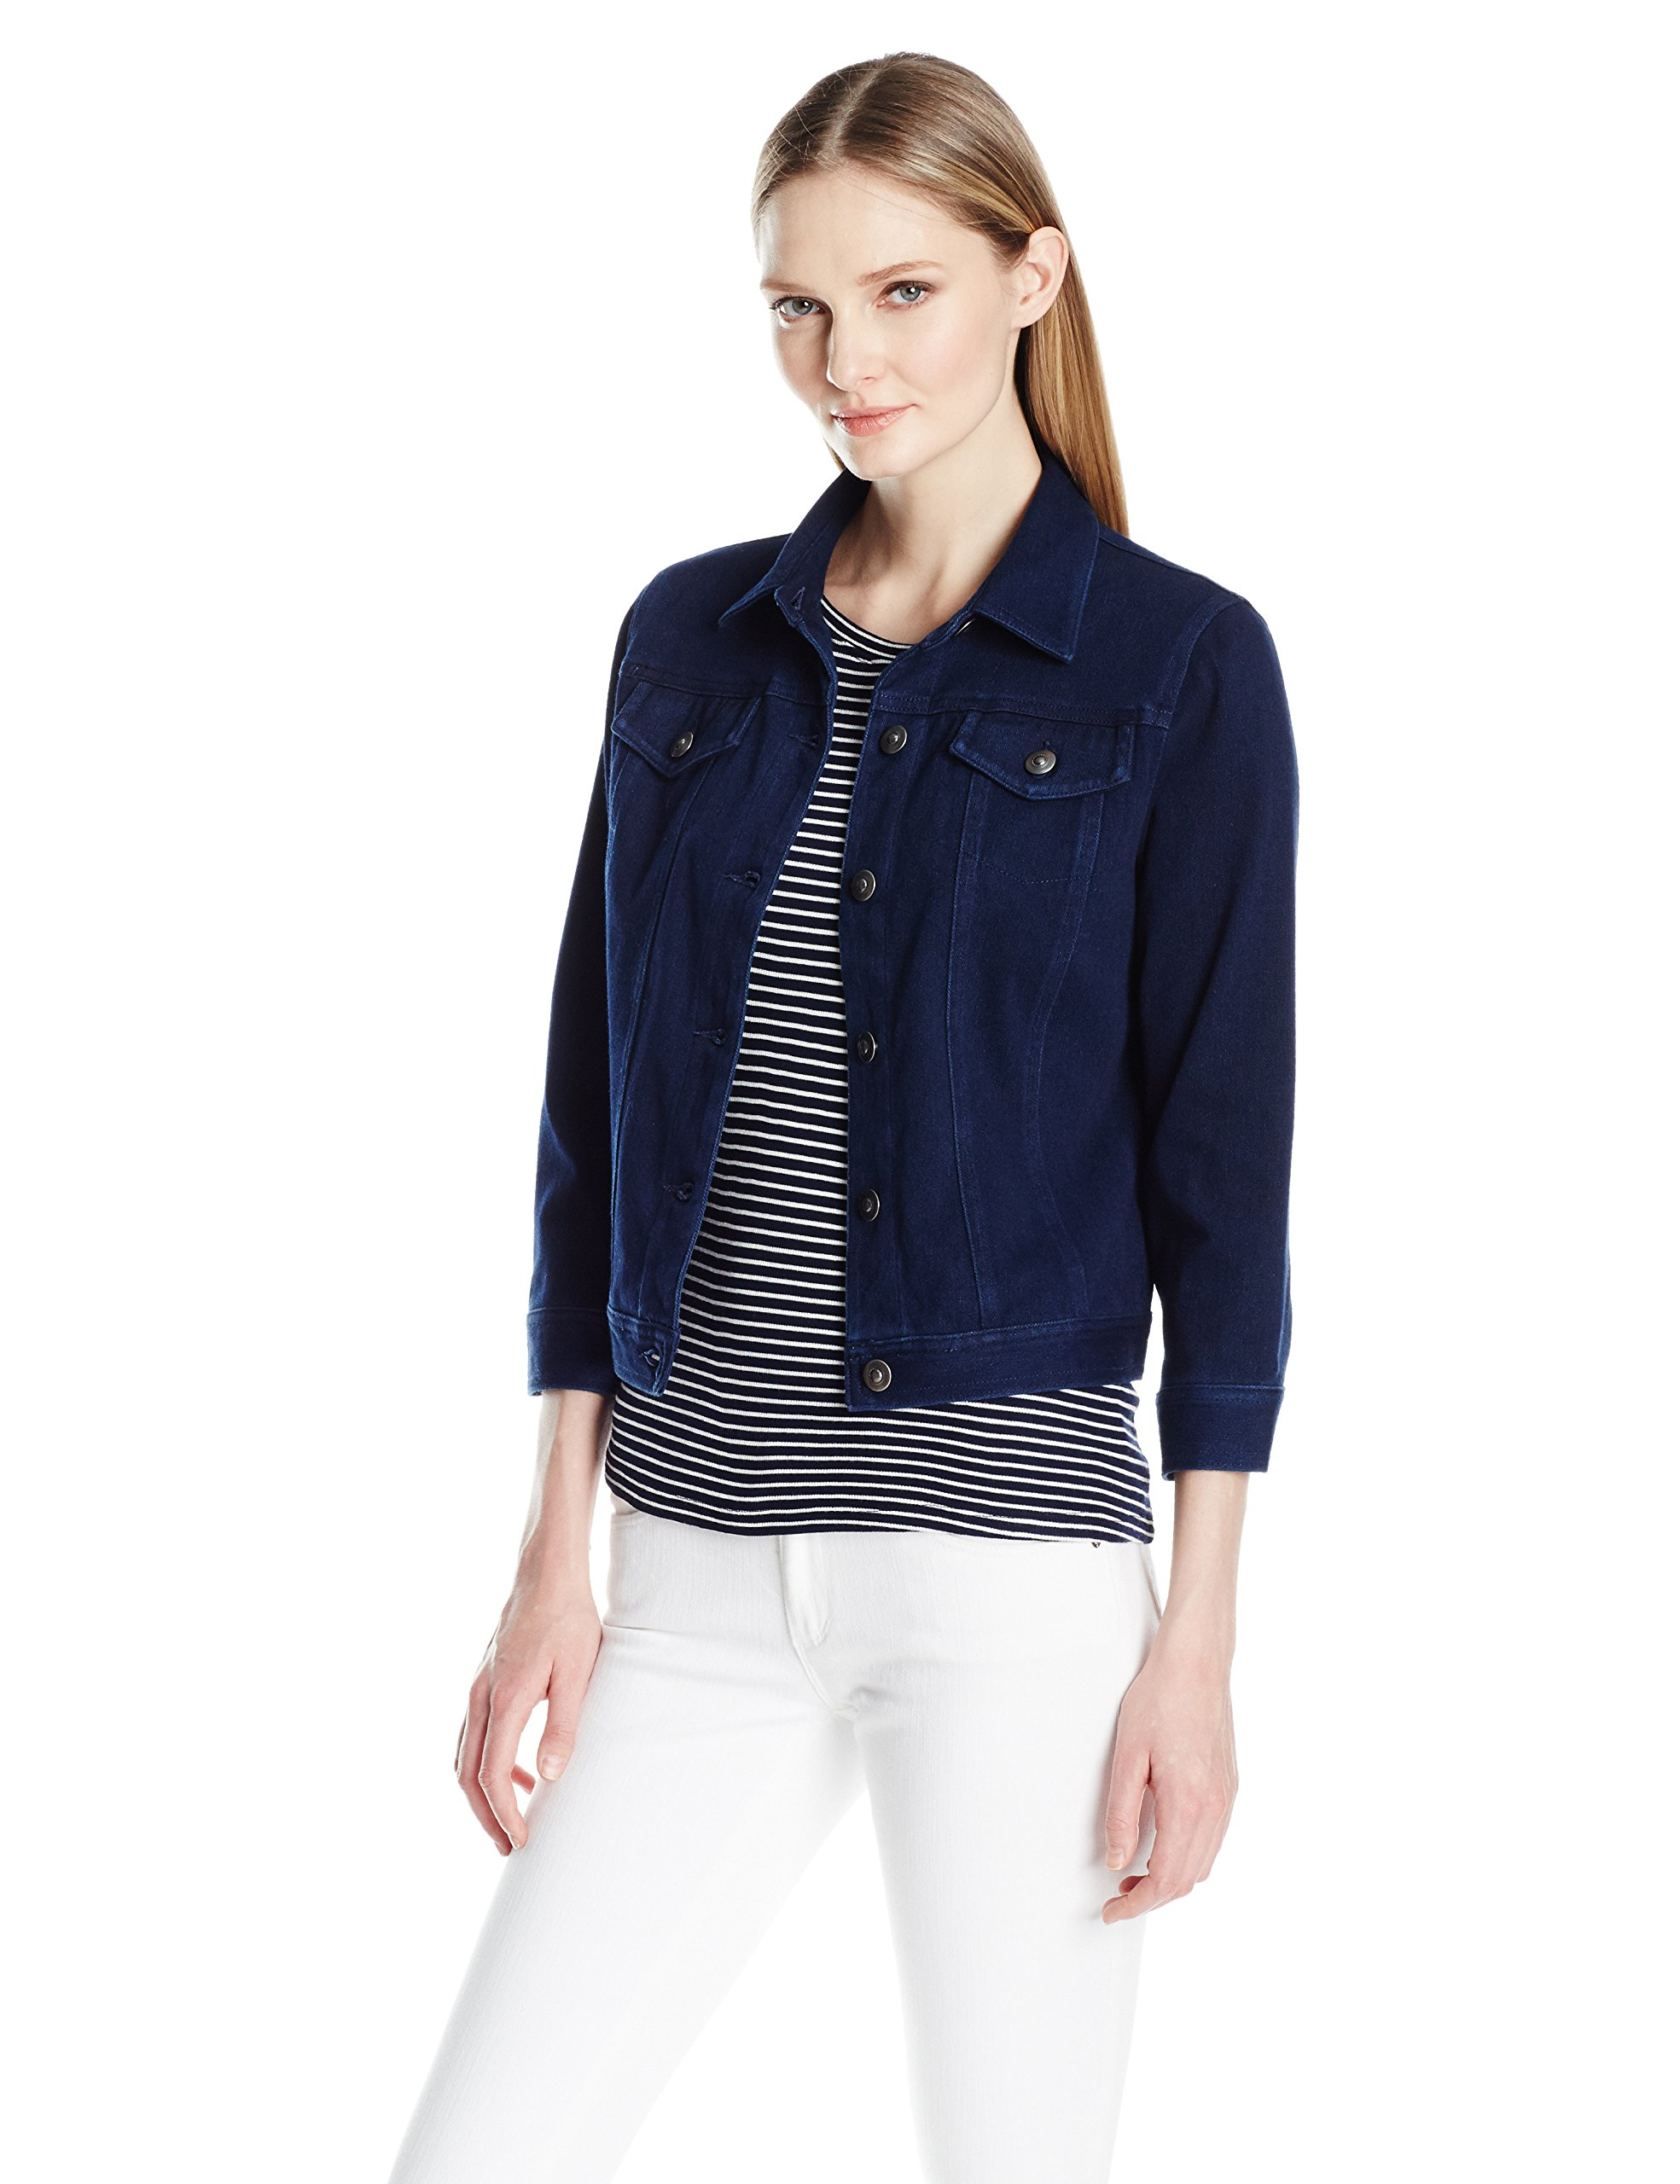 Ruby Rd. Women's Petite Button-Front Dyed Stretch Knitted Twill Jacket, Indigo, 14P